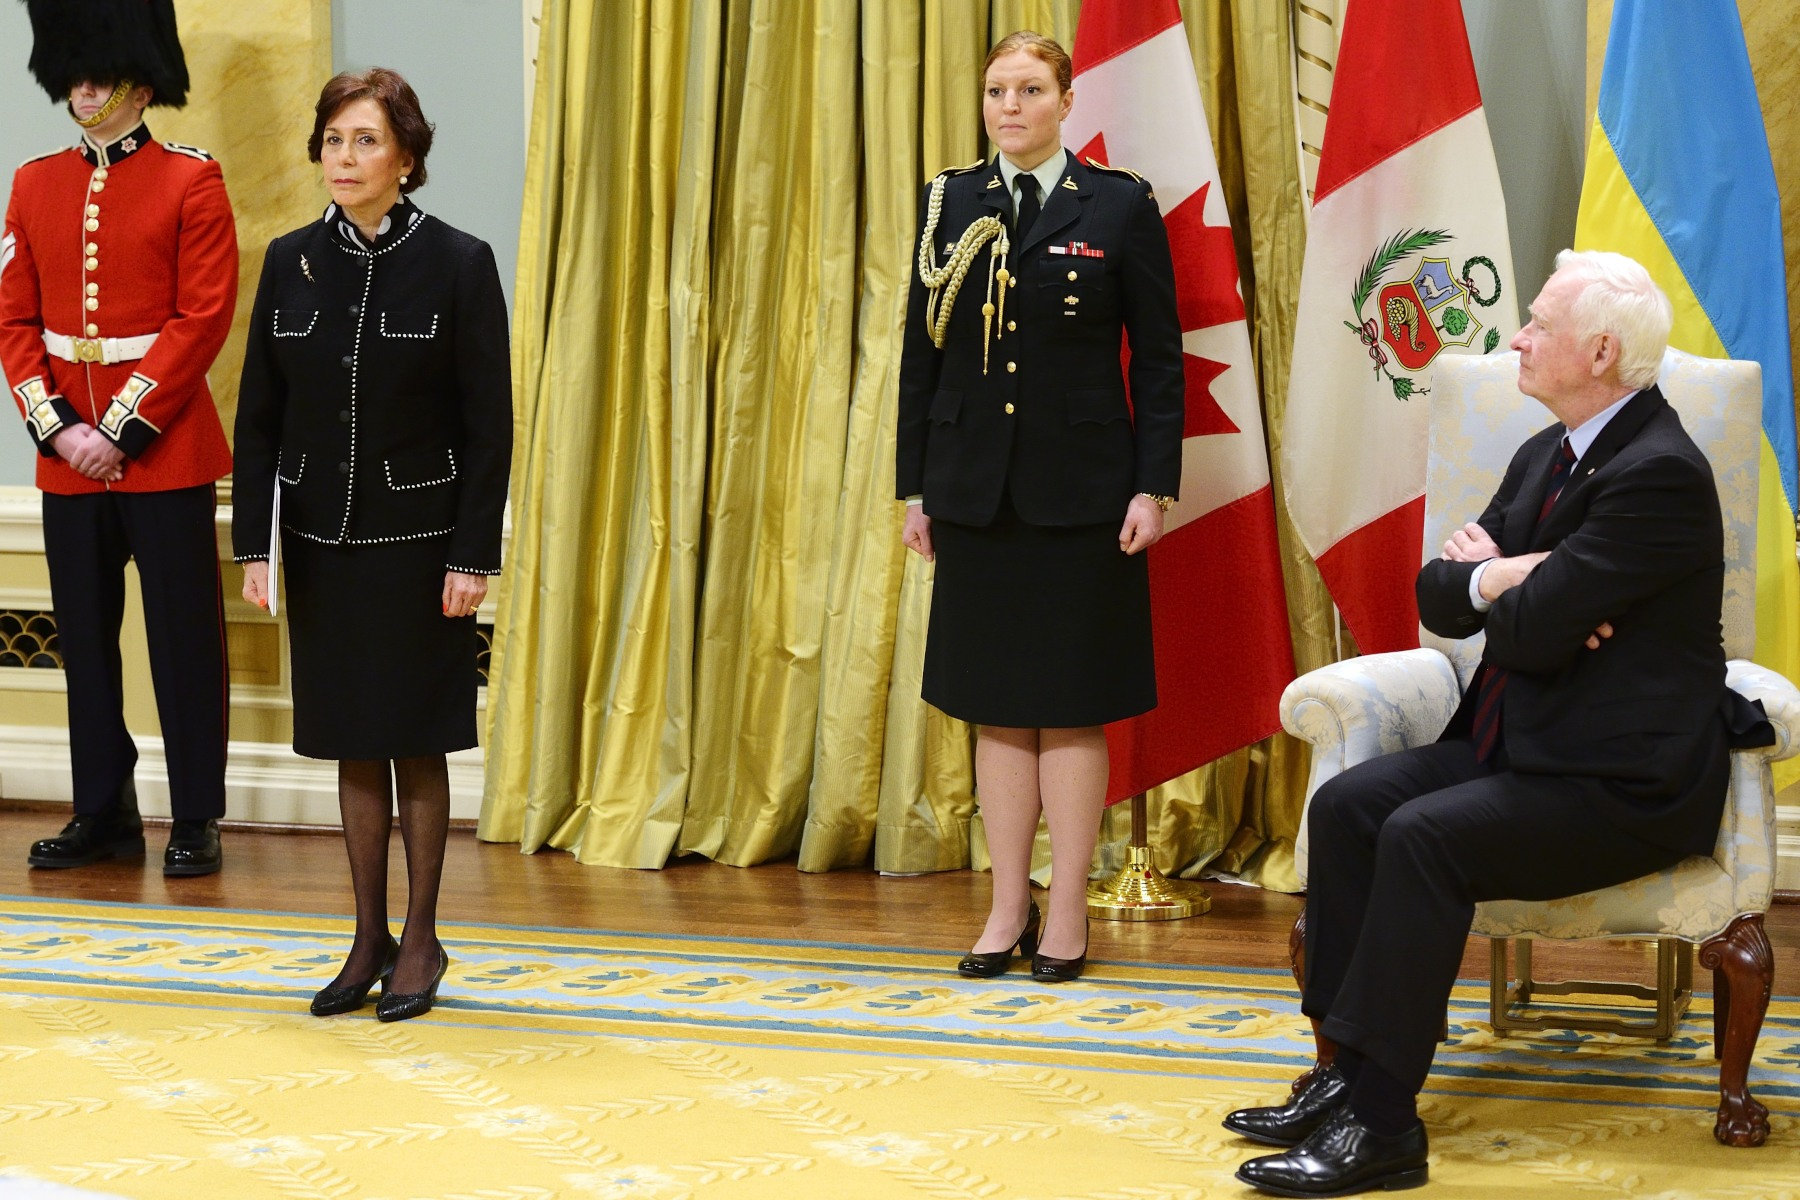 Her Excellency Marcela López Bravo Ambassador of the Republic of Peru was the first to present her letters of credence to the Governor General.